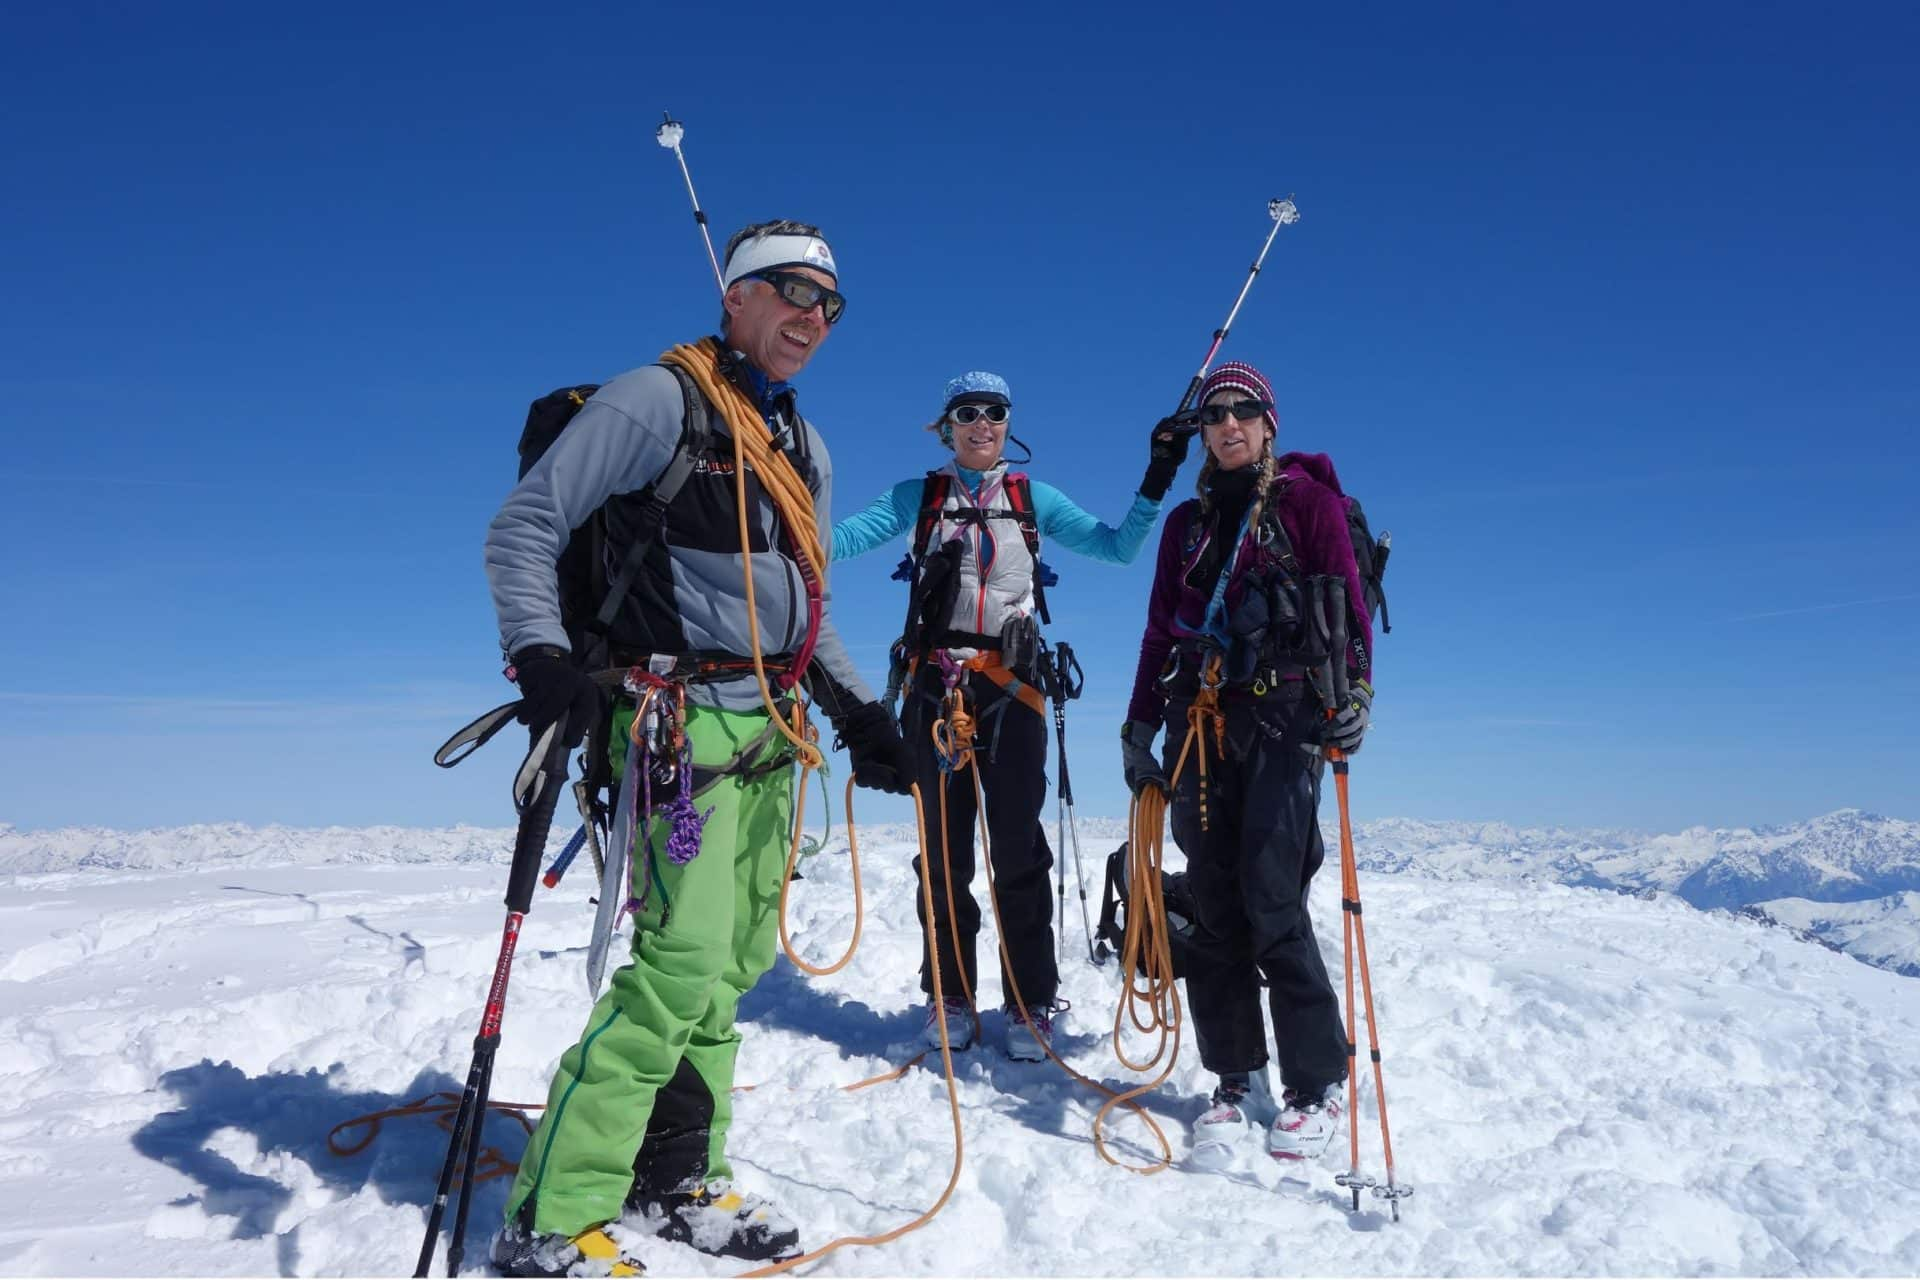 Guided ski touring in the Swiss Berner Oberland